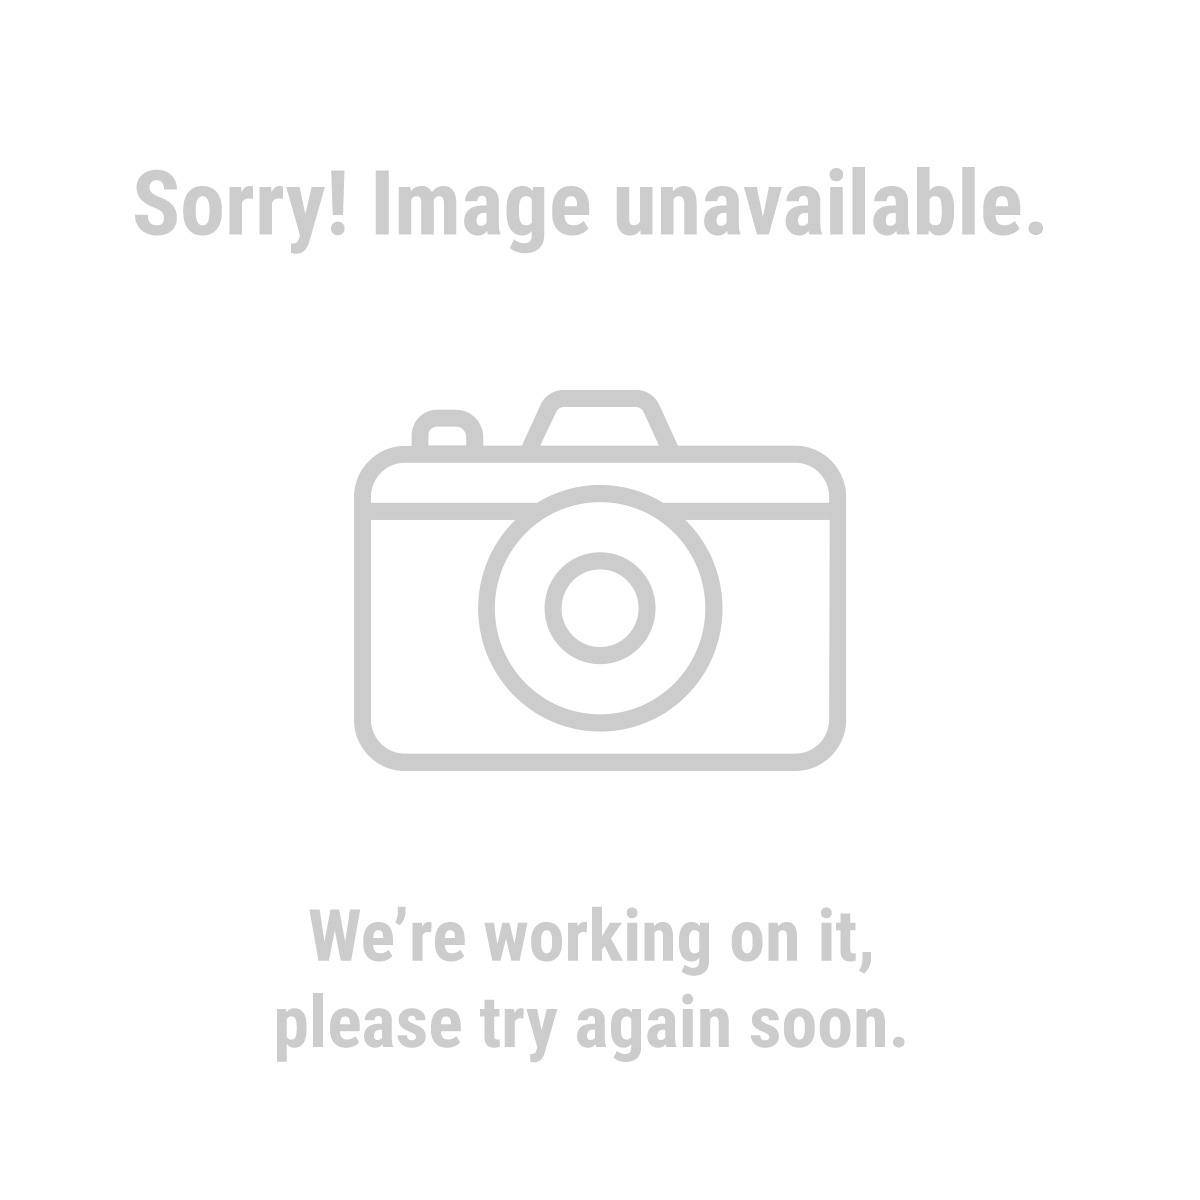 Badland® 61257 3500 lb. ATV/Utility Electric Winch with Automatic Load-Holding Brake